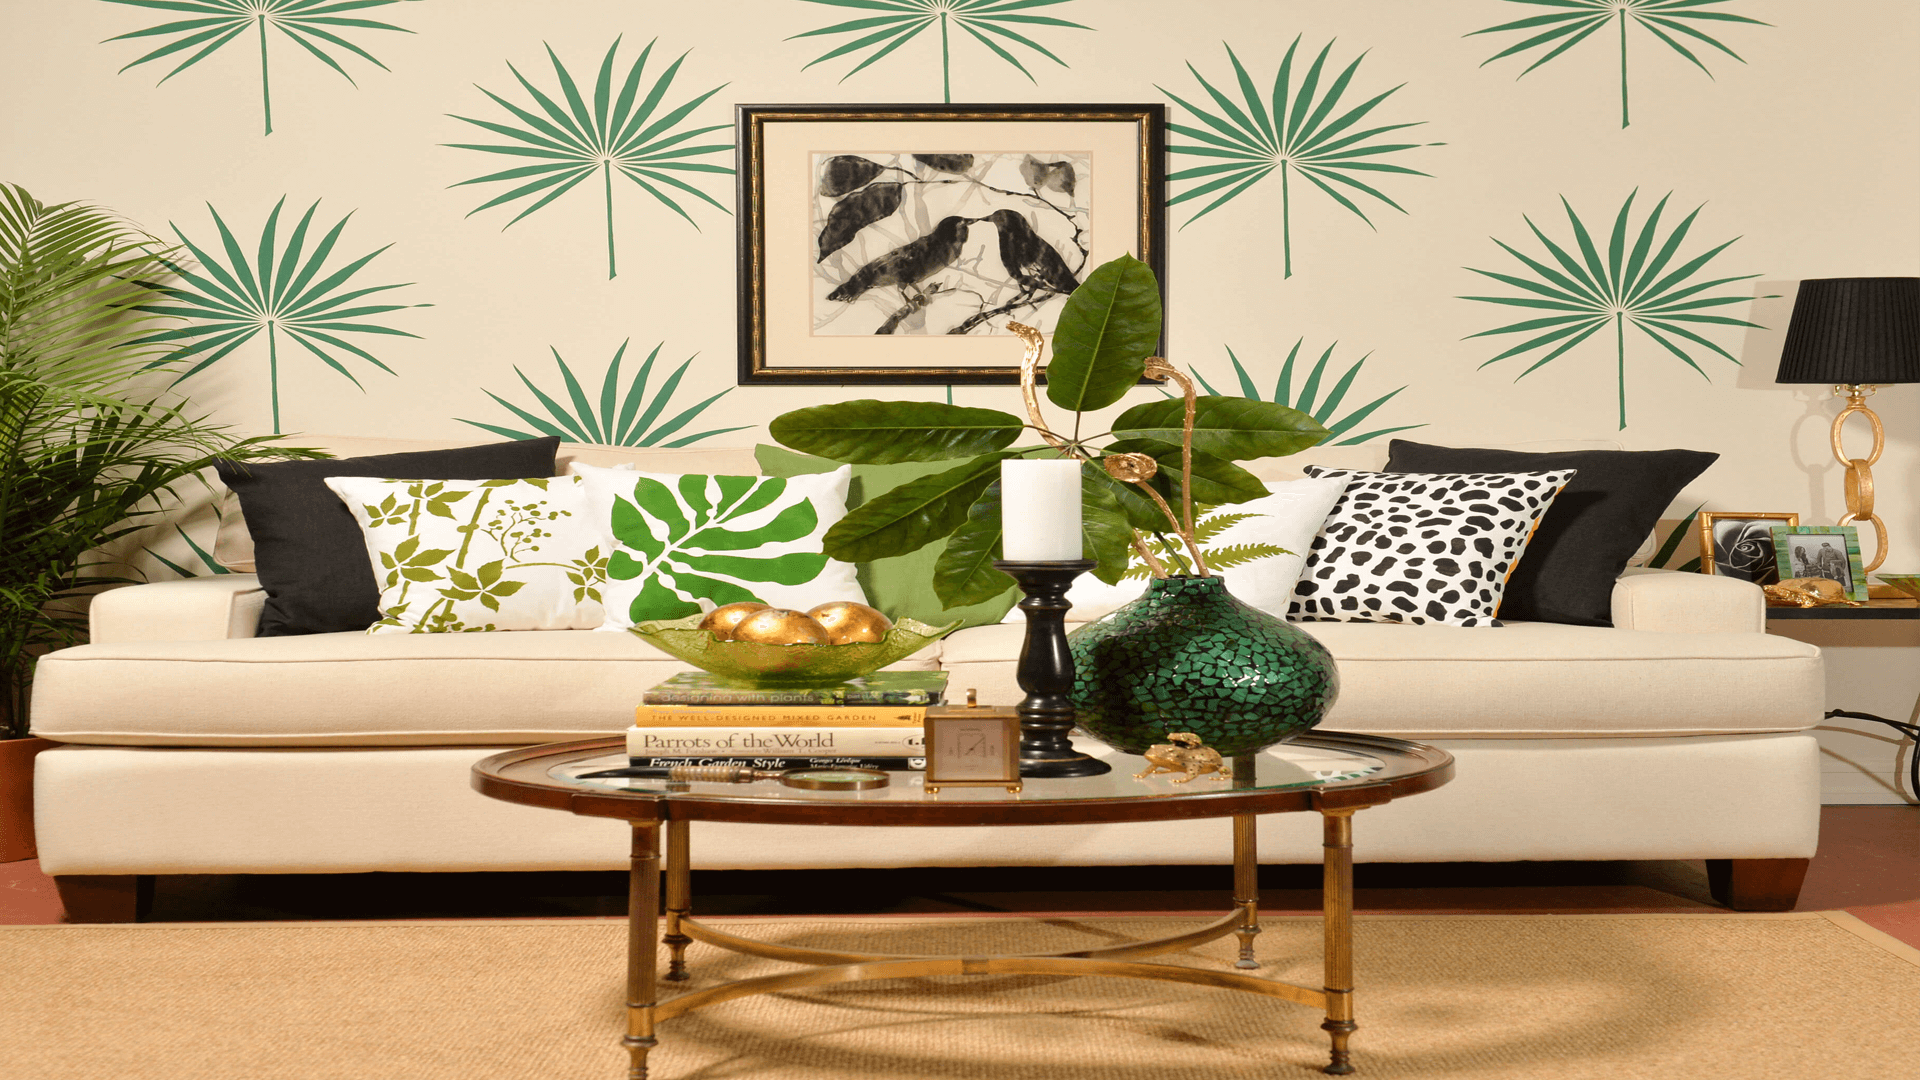 Recreate the tropical decorating trend using these tips